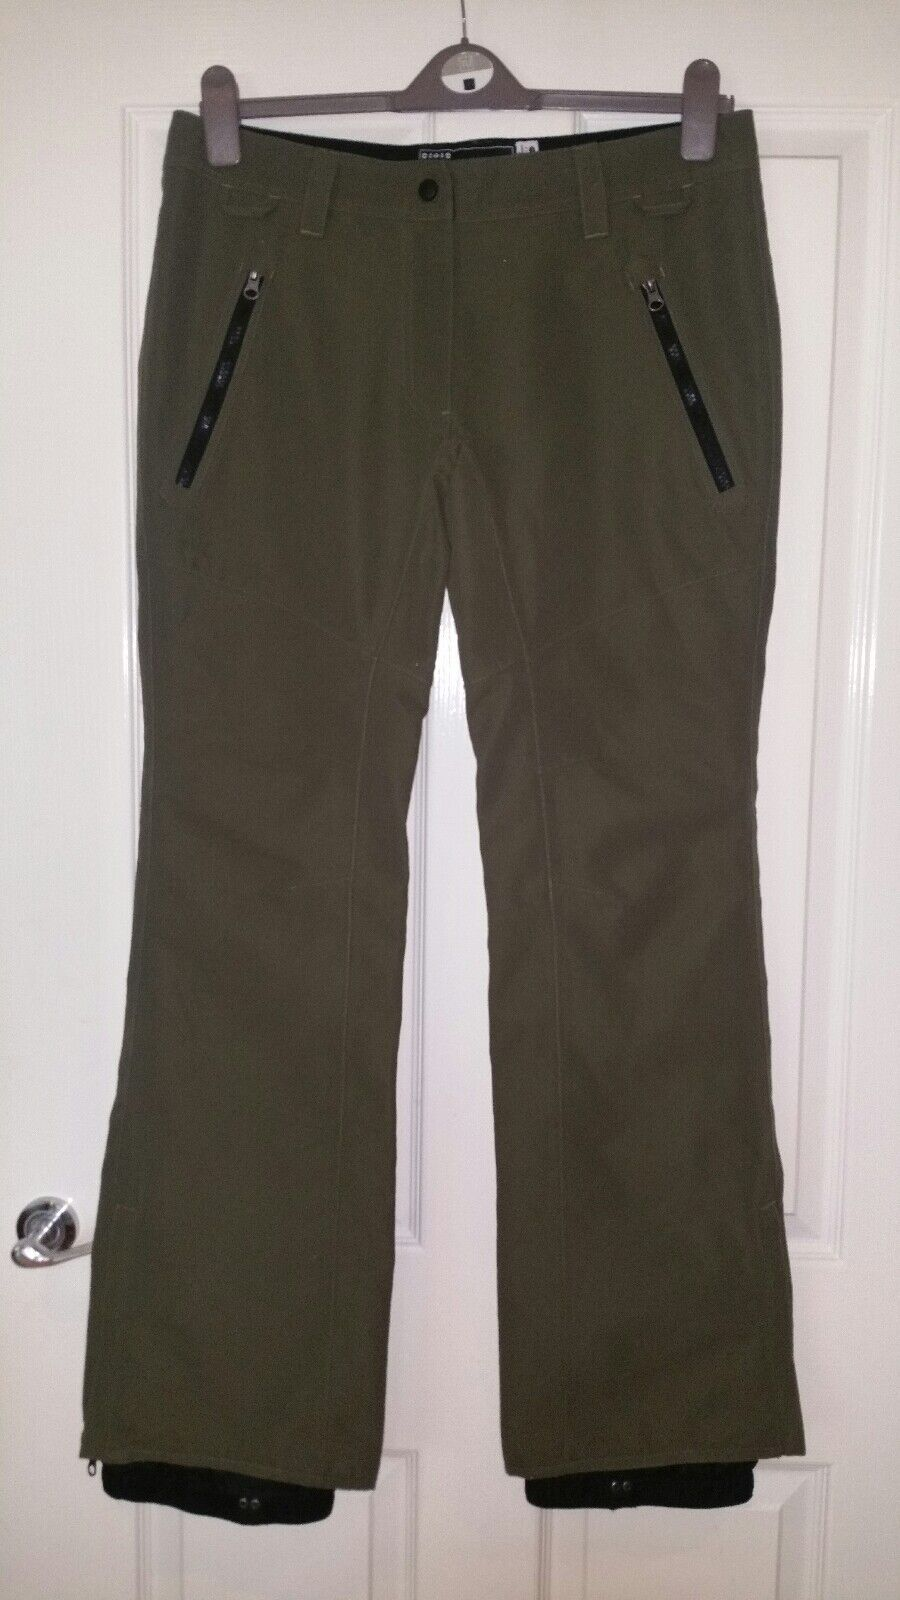 Womens snowboard ski trousers  pants jeans size M WESTBEACH olive green 10.000mm  buy brand